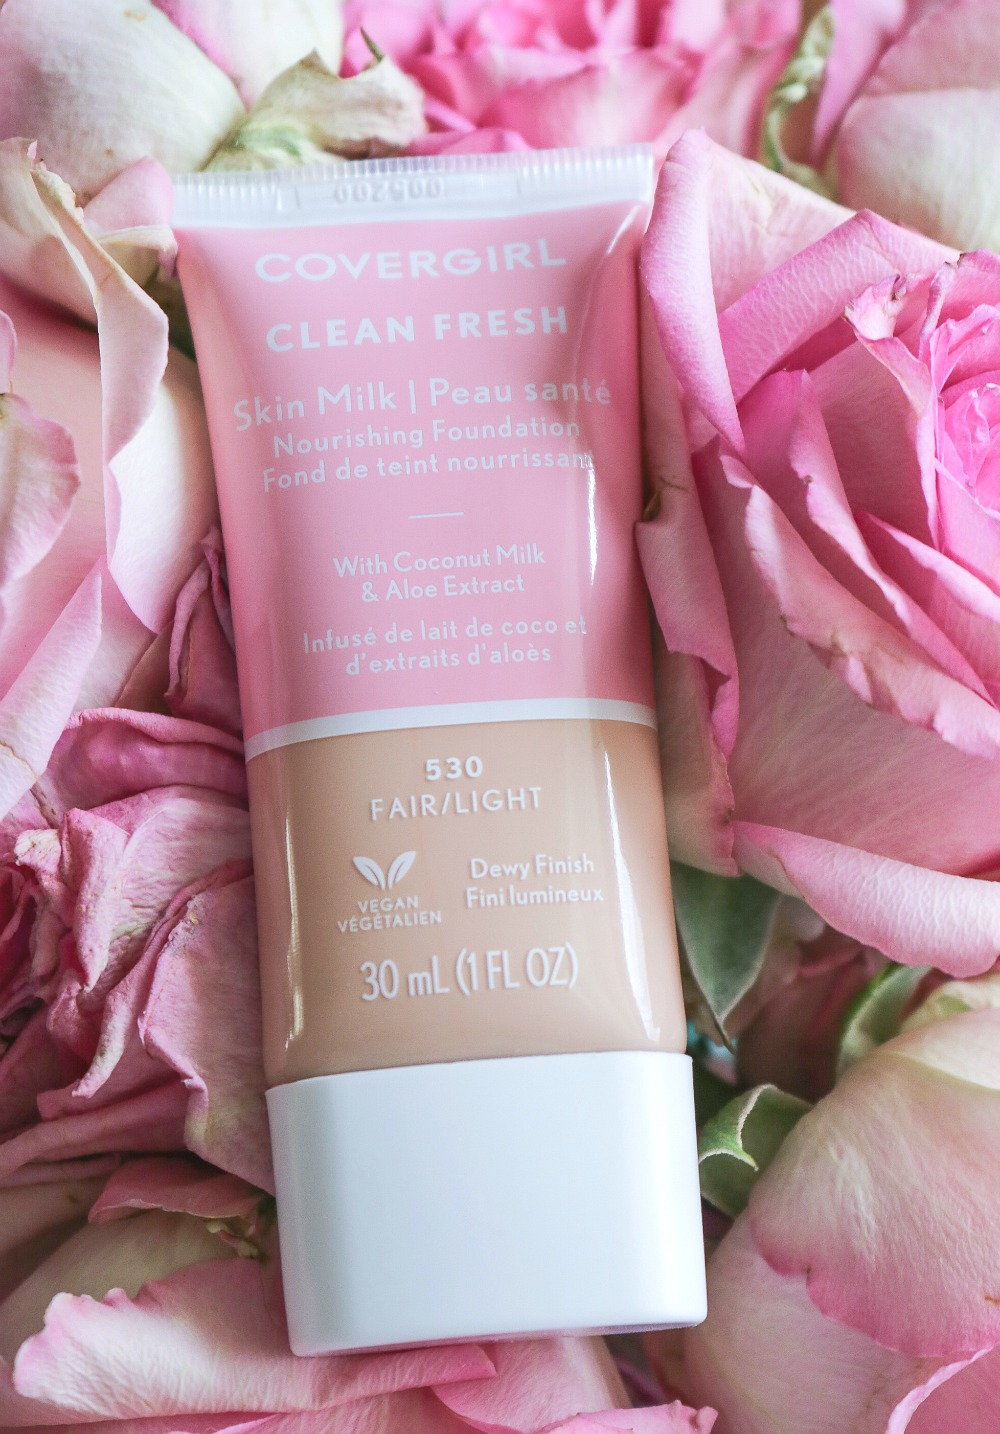 Covergirl Clean Fresh Foundation Review I DreaminLace.com